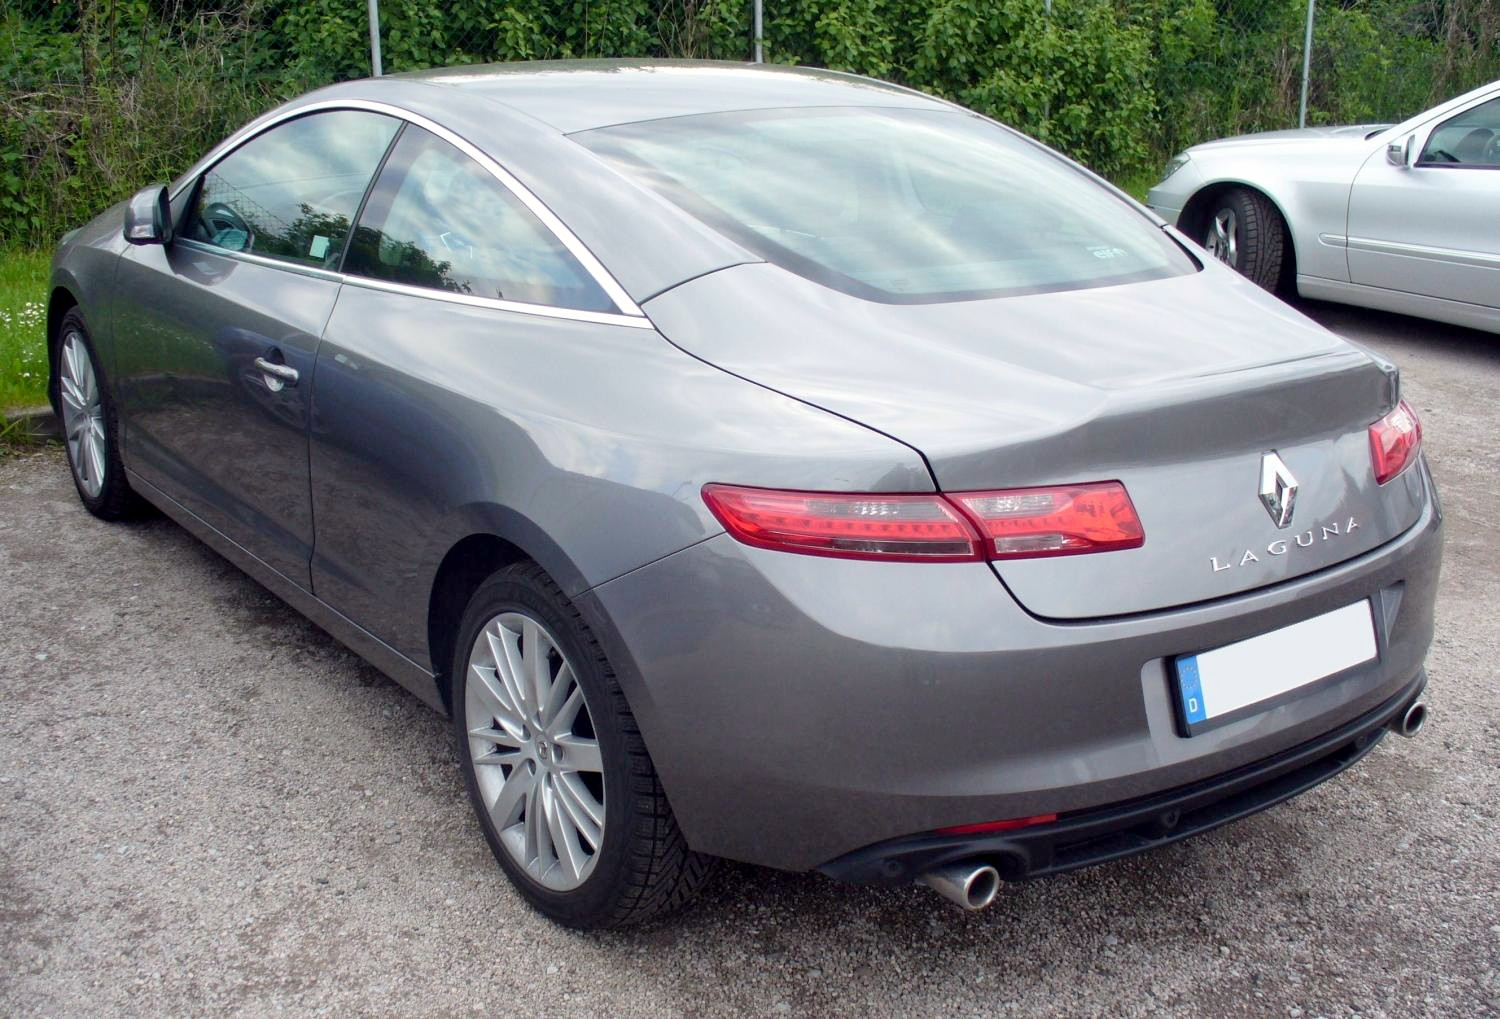 2008 renault laguna iii hatchback pictures information and specs auto. Black Bedroom Furniture Sets. Home Design Ideas